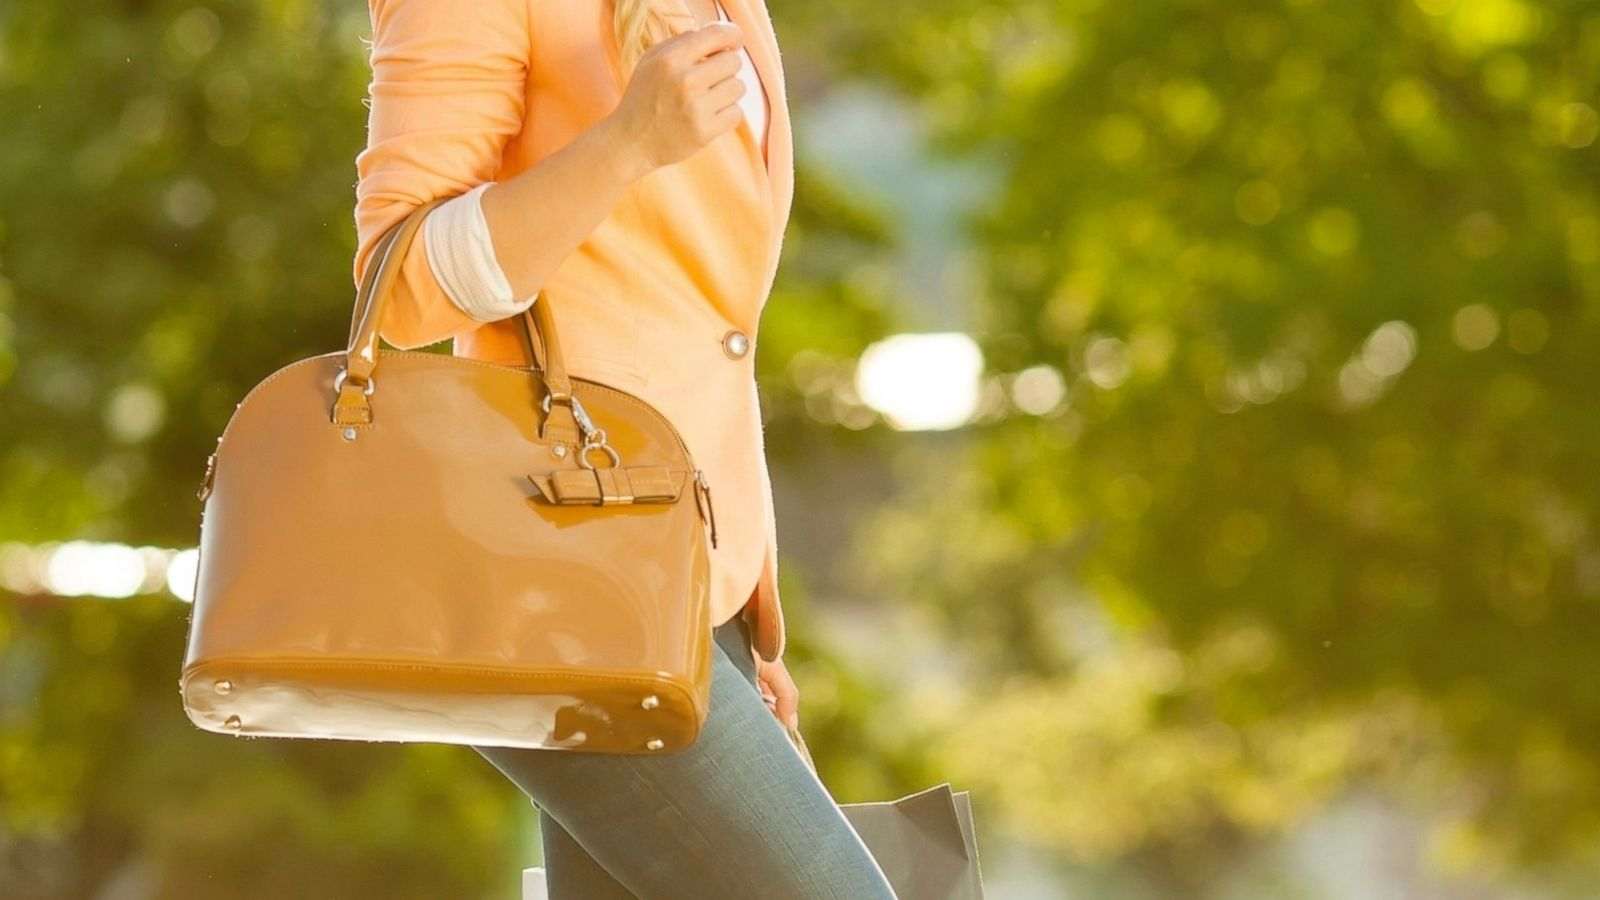 Selling Your Designer Handbag  Where Could You Net the Most Cash  - ABC News ec0b2b448cba4